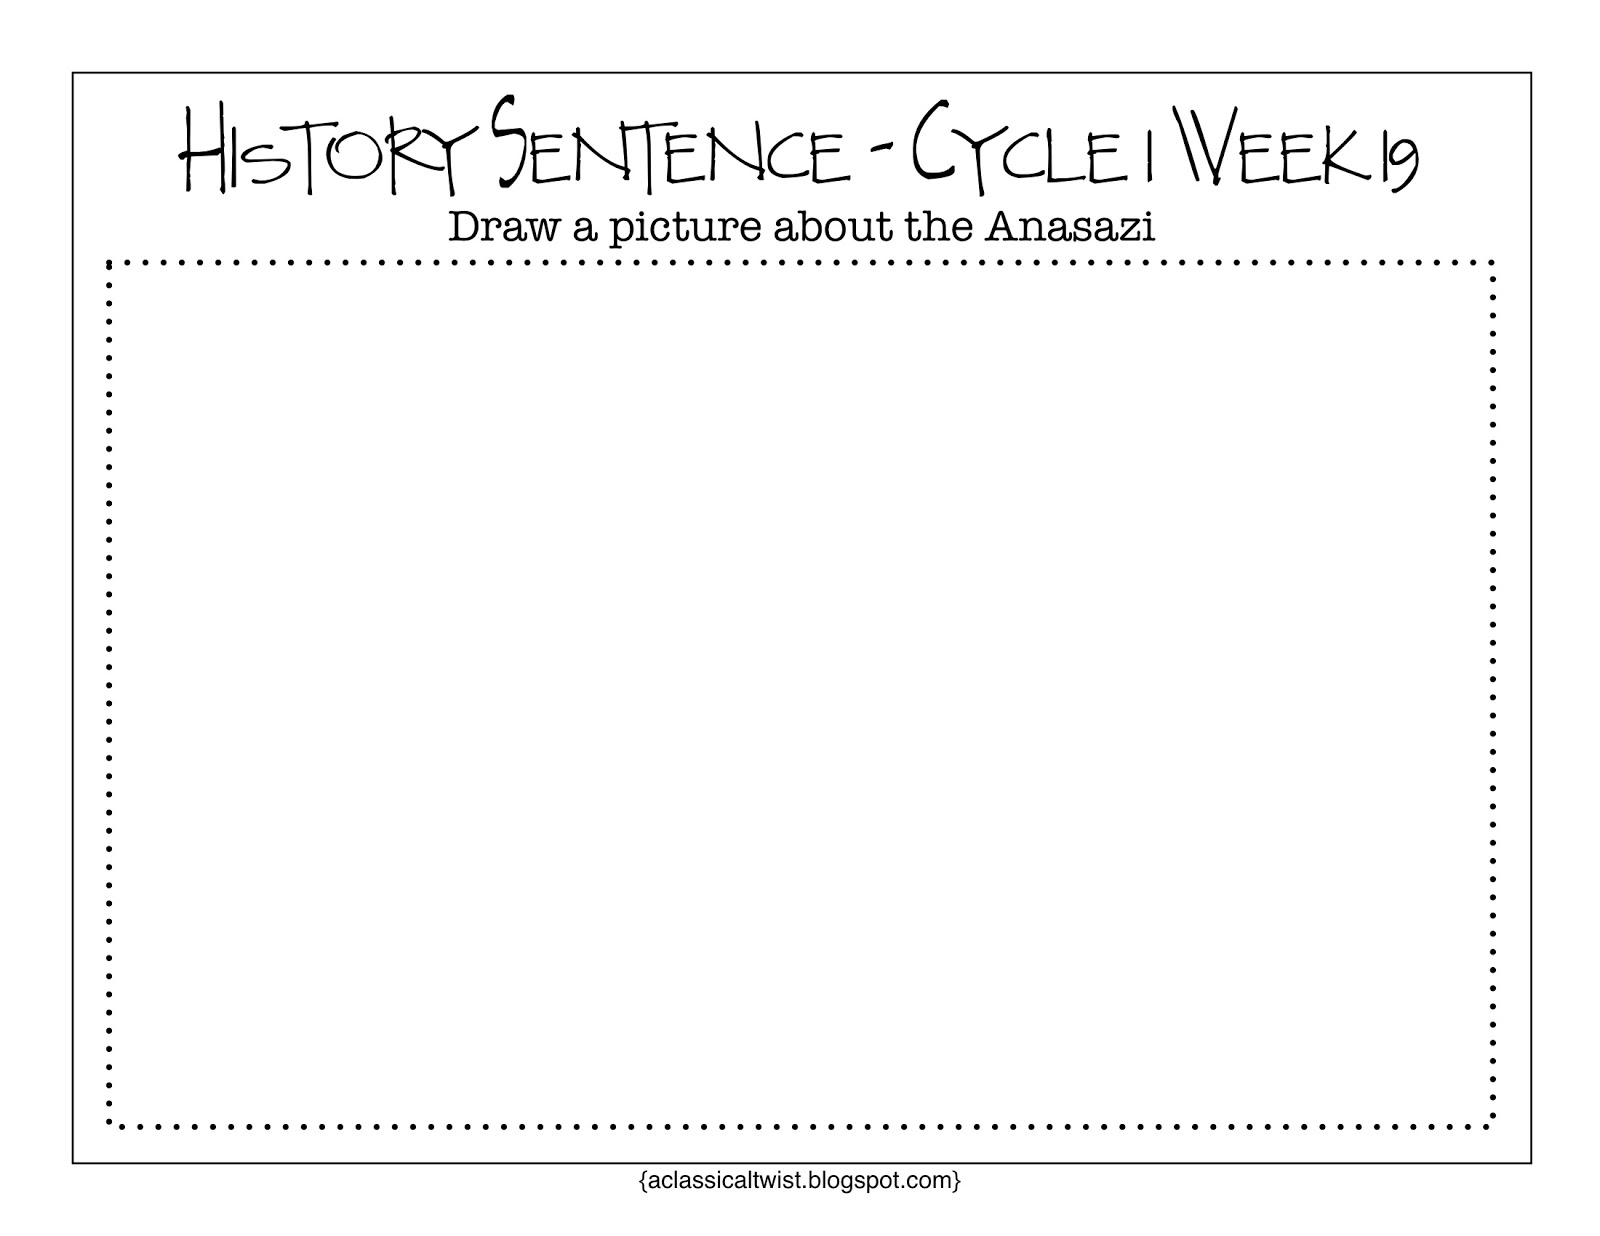 history week 1 Start studying history week 1 chapter 4 learn vocabulary, terms, and more with flashcards, games, and other study tools.